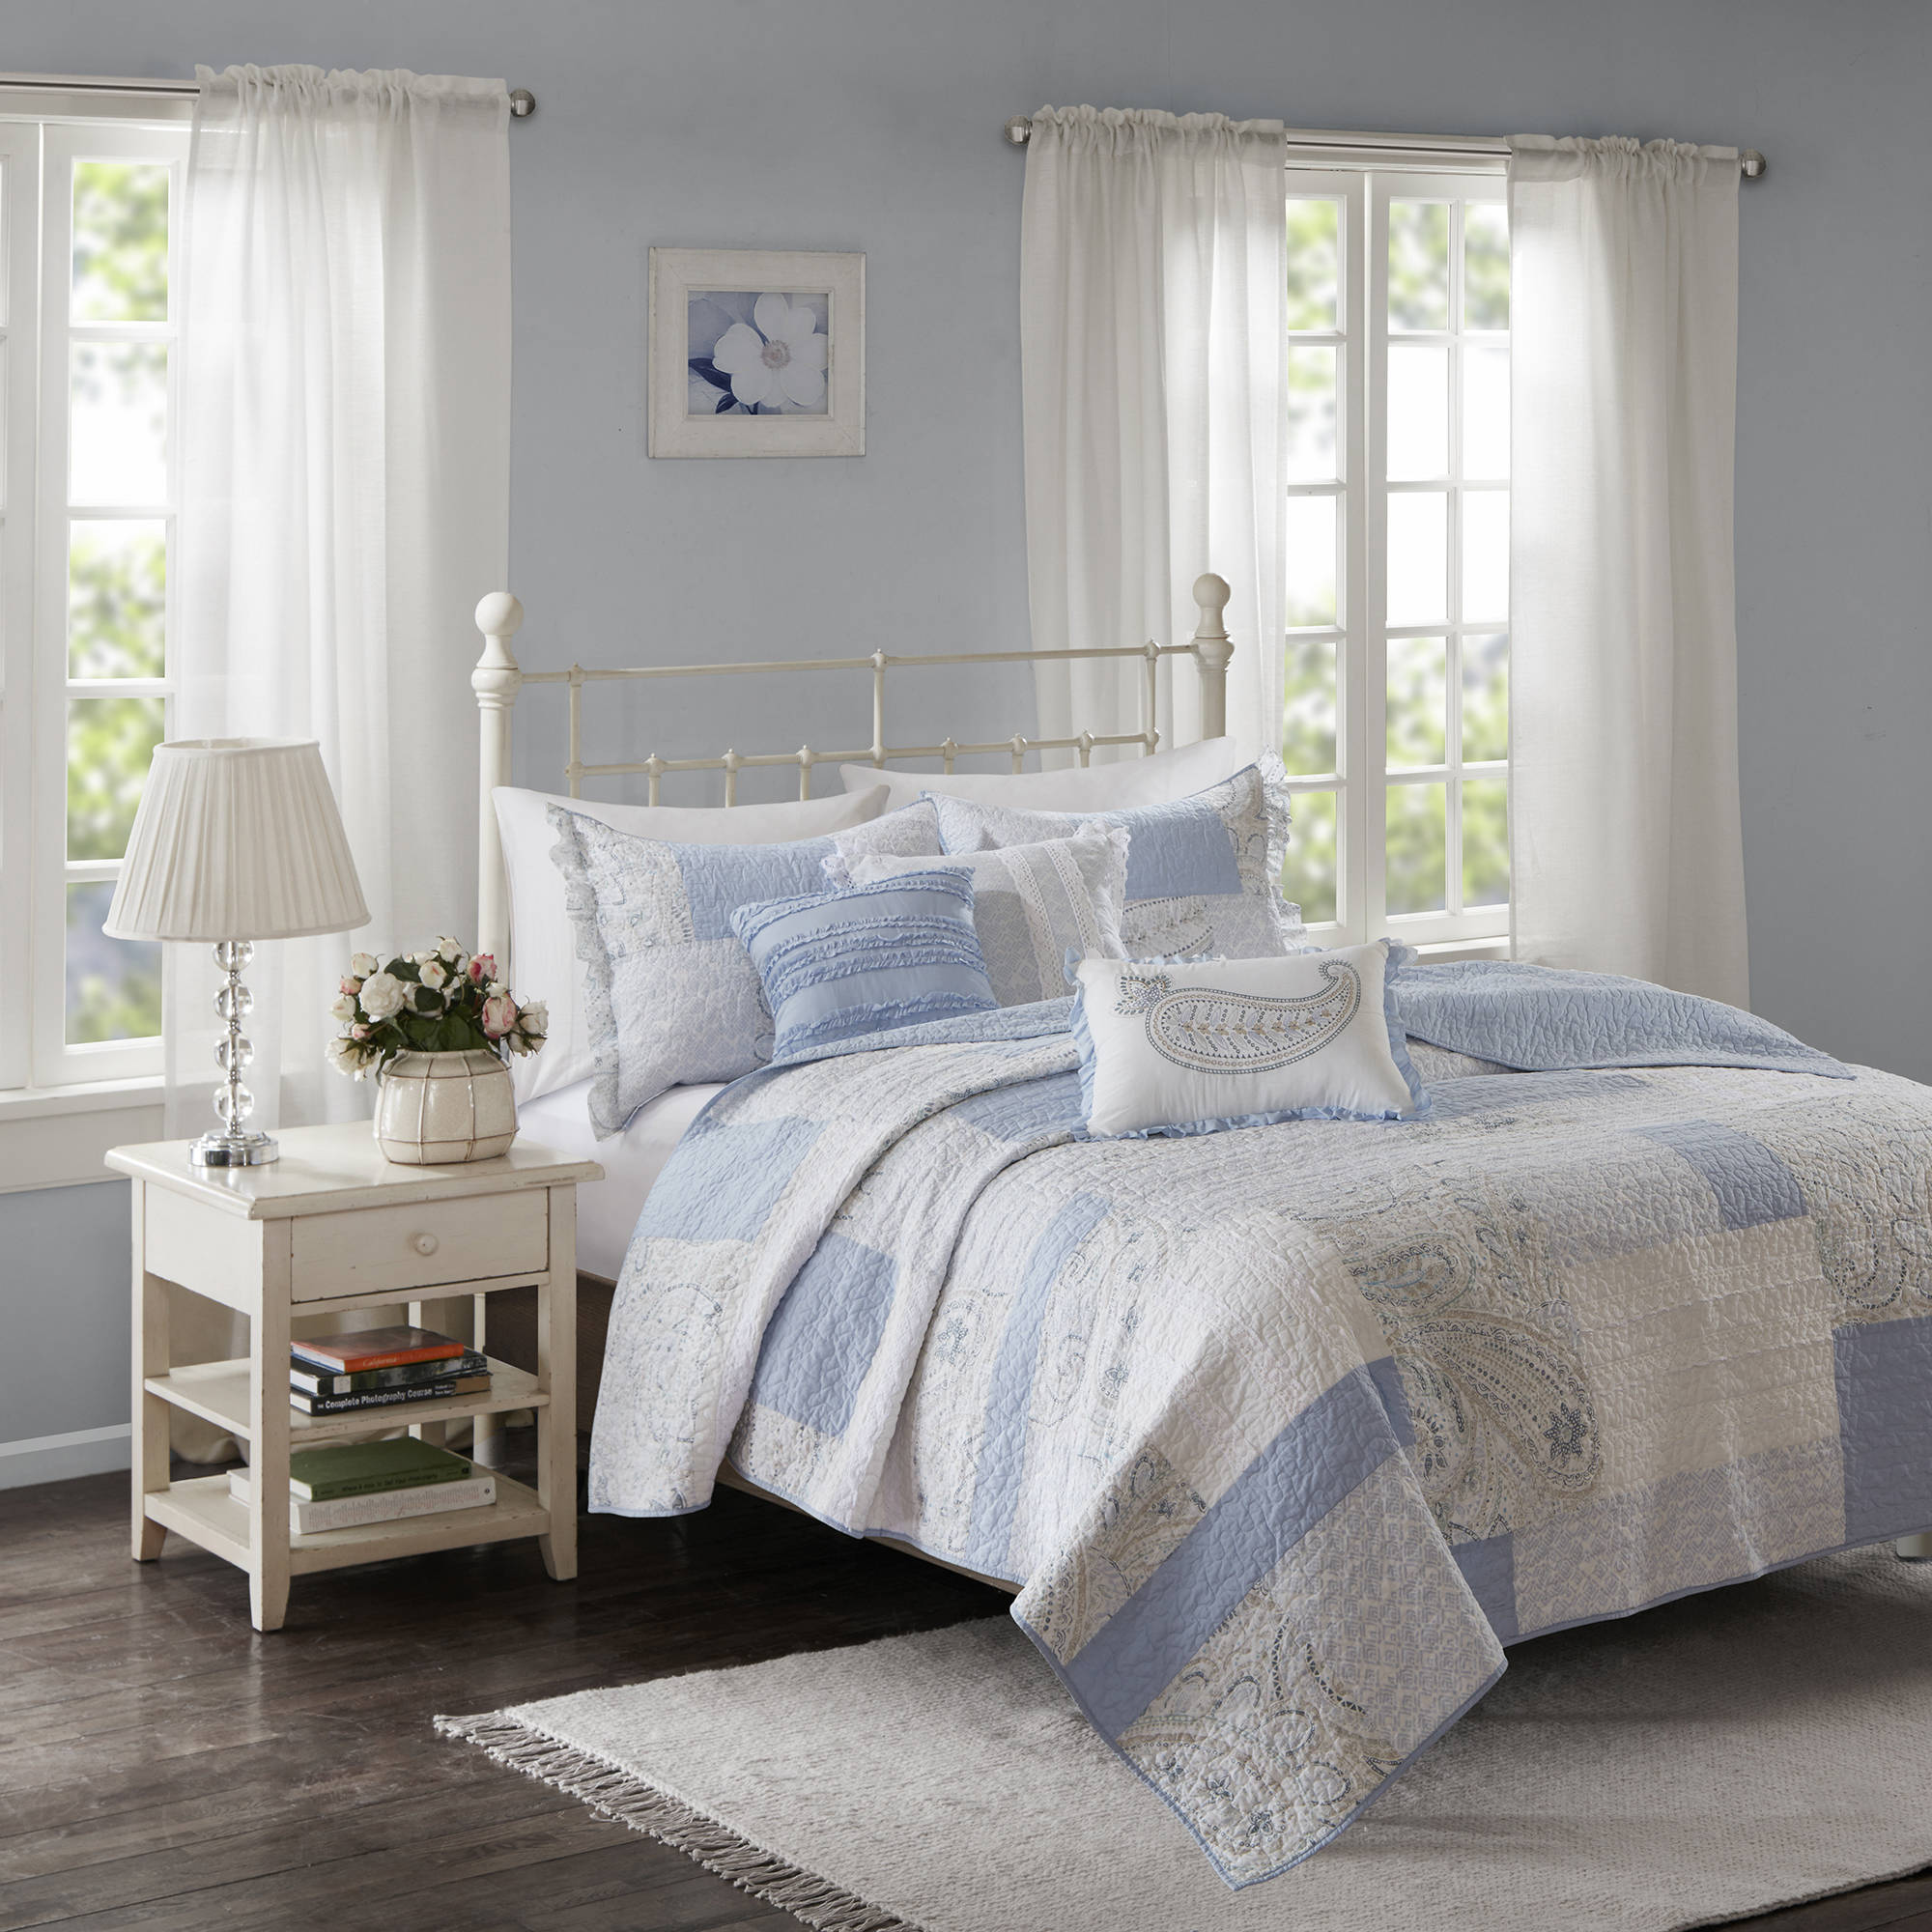 Home Essence Laurette Cotton Percale Quilted Coverlet Set by E&E Co.